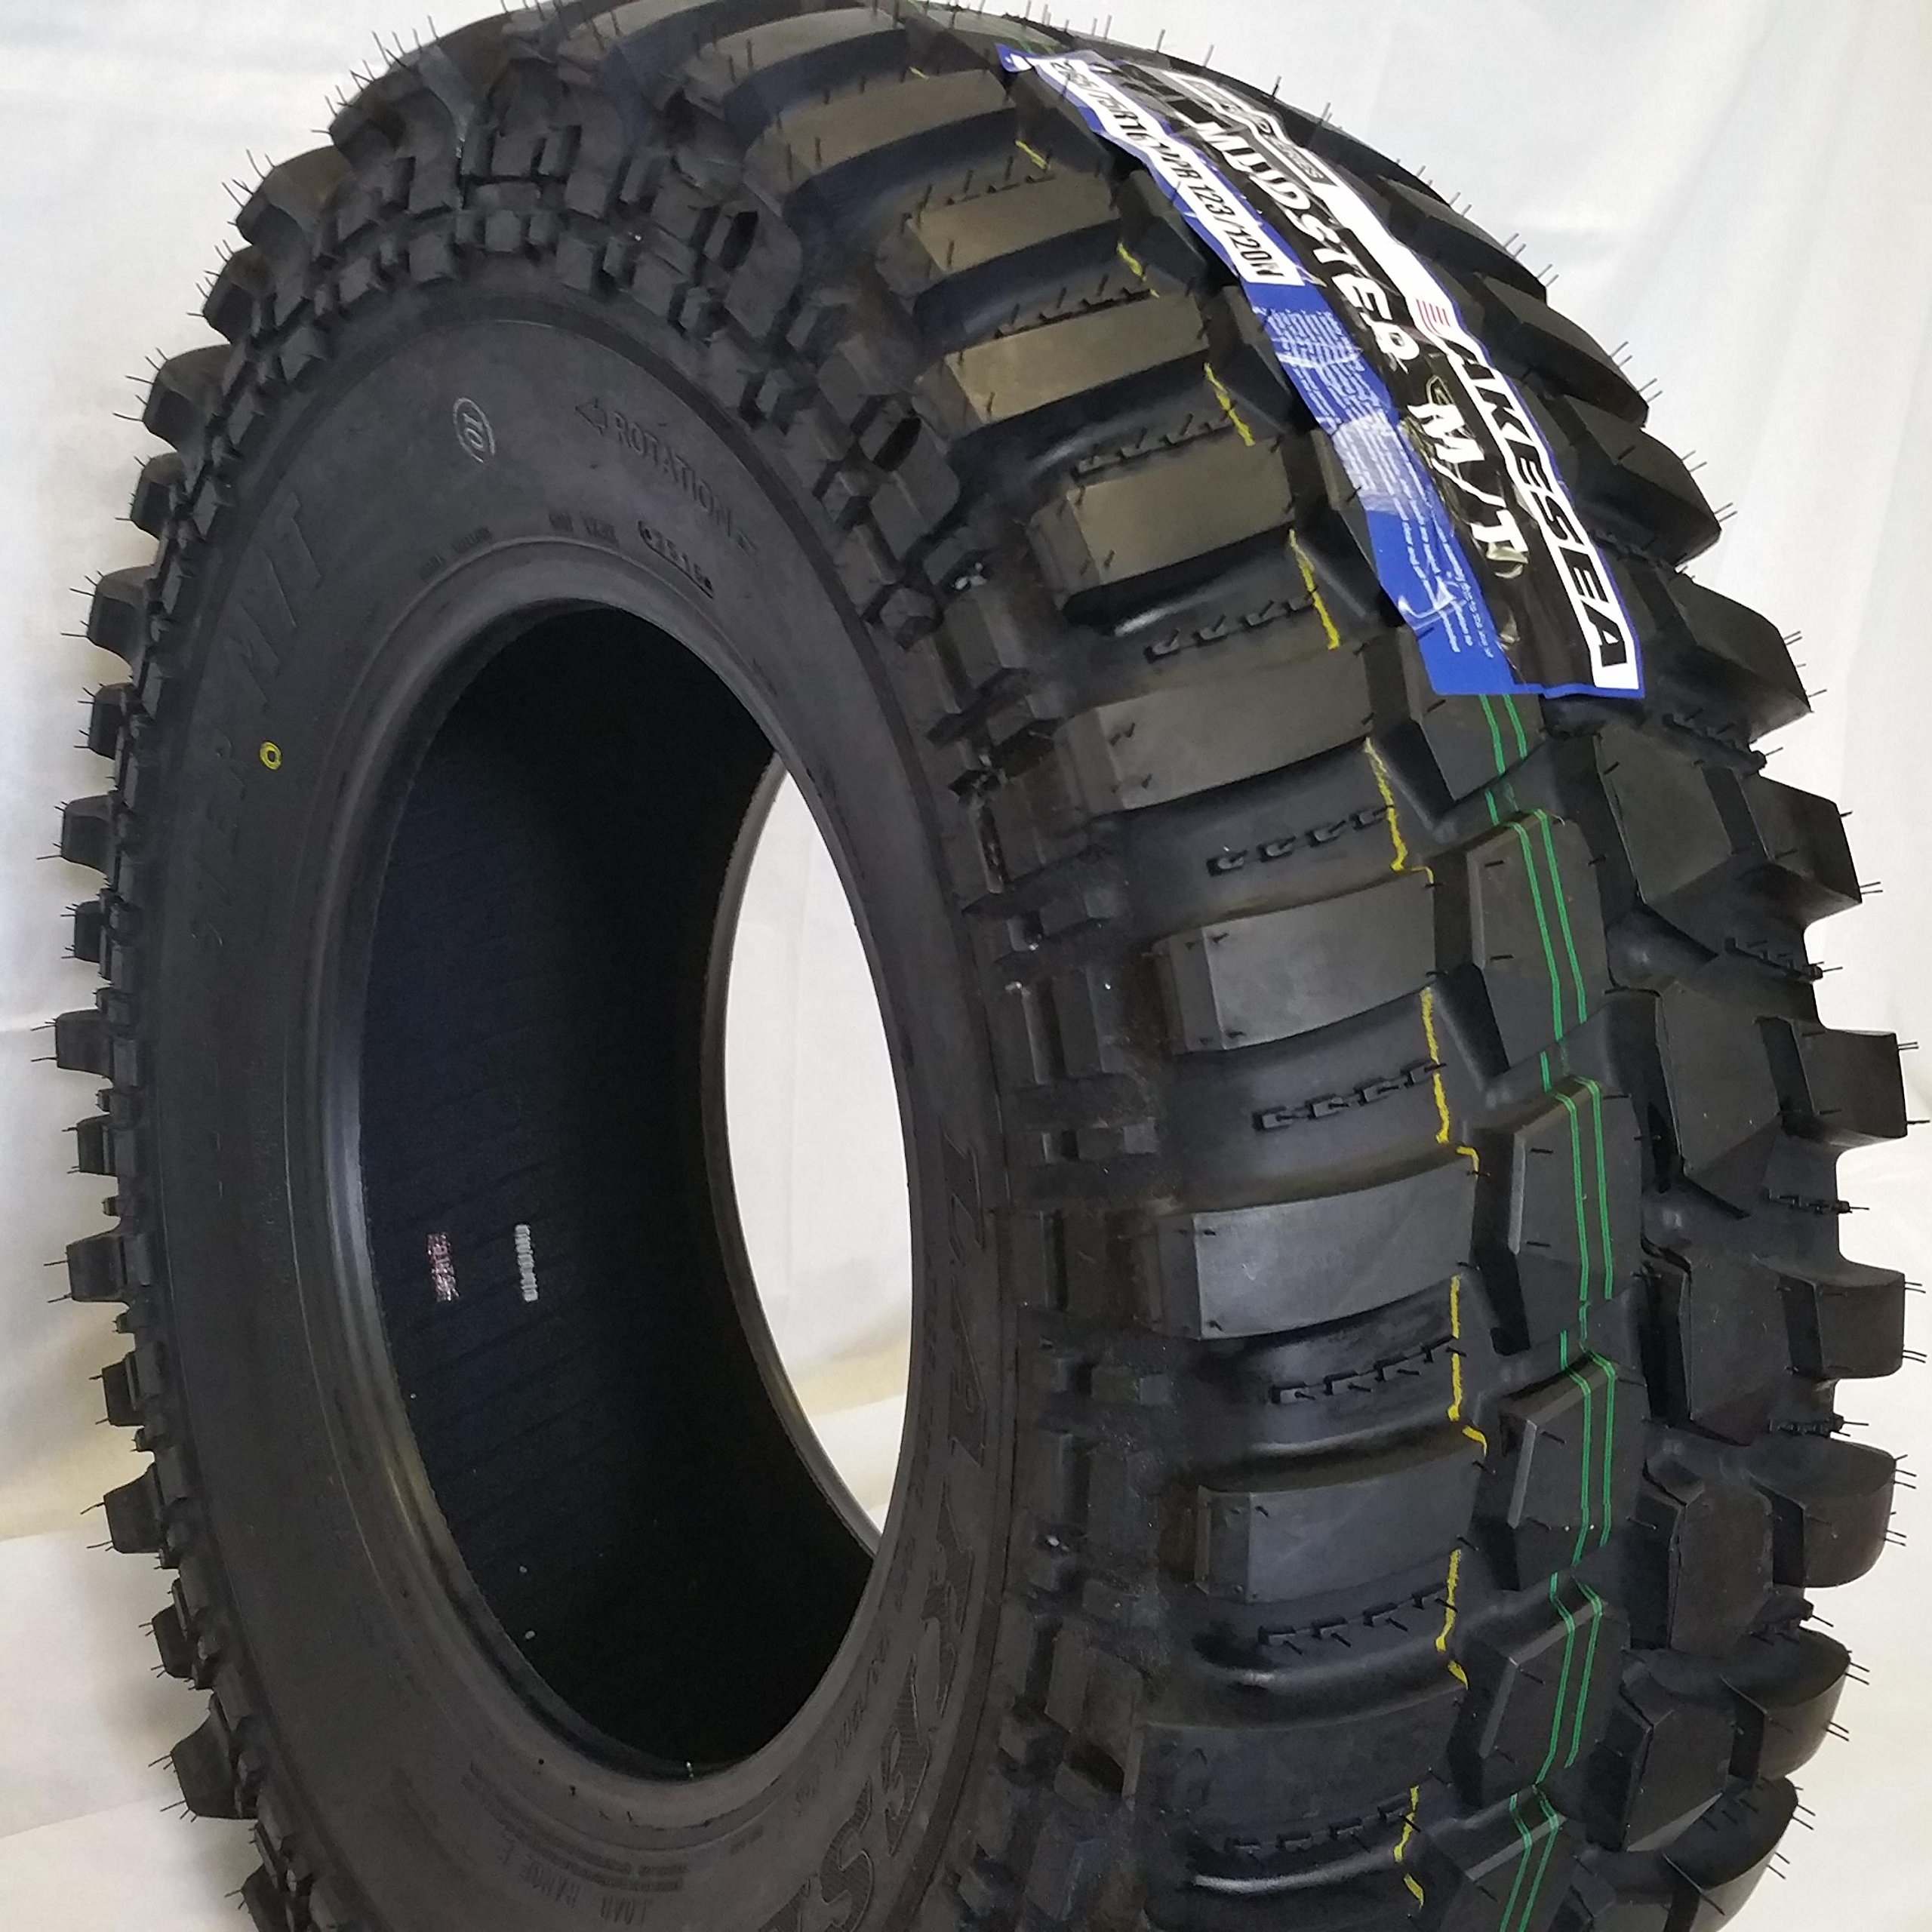 (4-Tires) LT265/75R16 E/10 123/120N- ROAD WARRIOR LAKESEA MUDSTER 2657516 by ROAD WARRIOR ARDENT (Image #1)